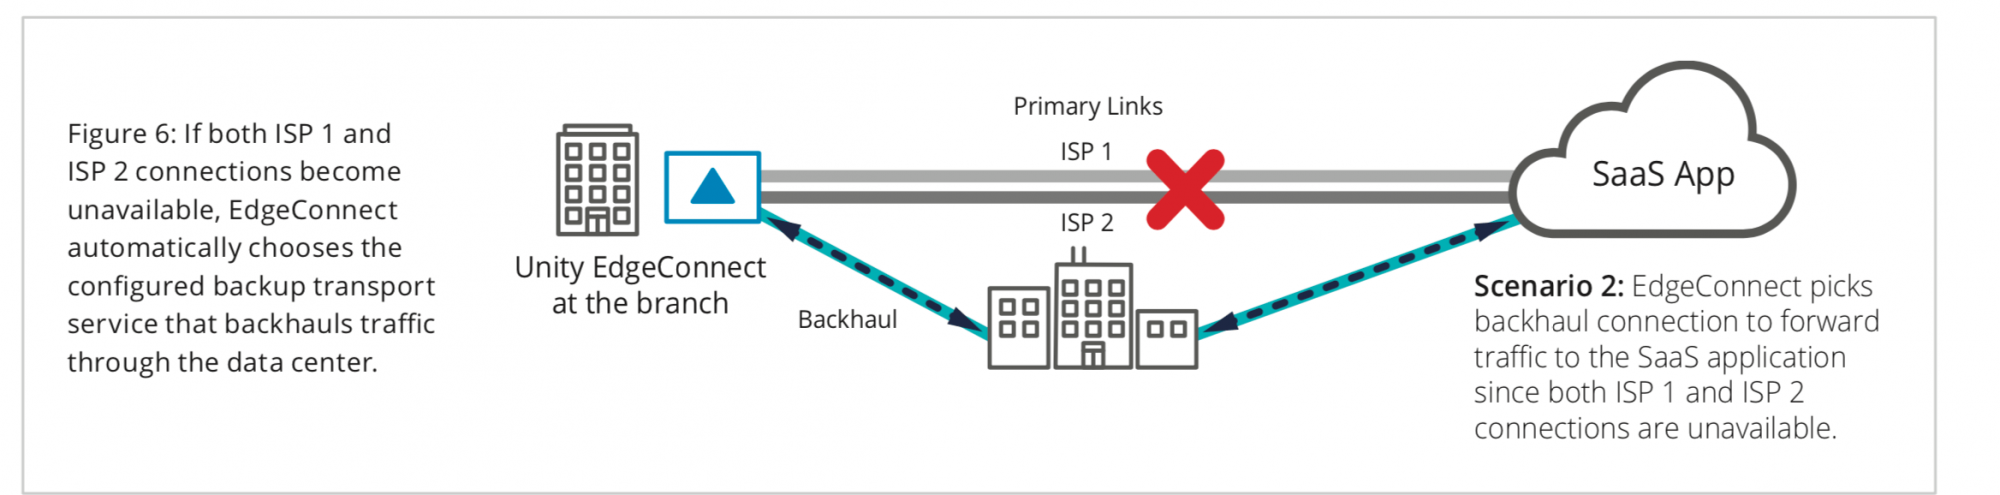 Figure 6: If both ISP 1 and ISP 2 connections become unavailable, EdgeConnect automatically chooses the configured backup transport service that backhauls traffic through the data center.